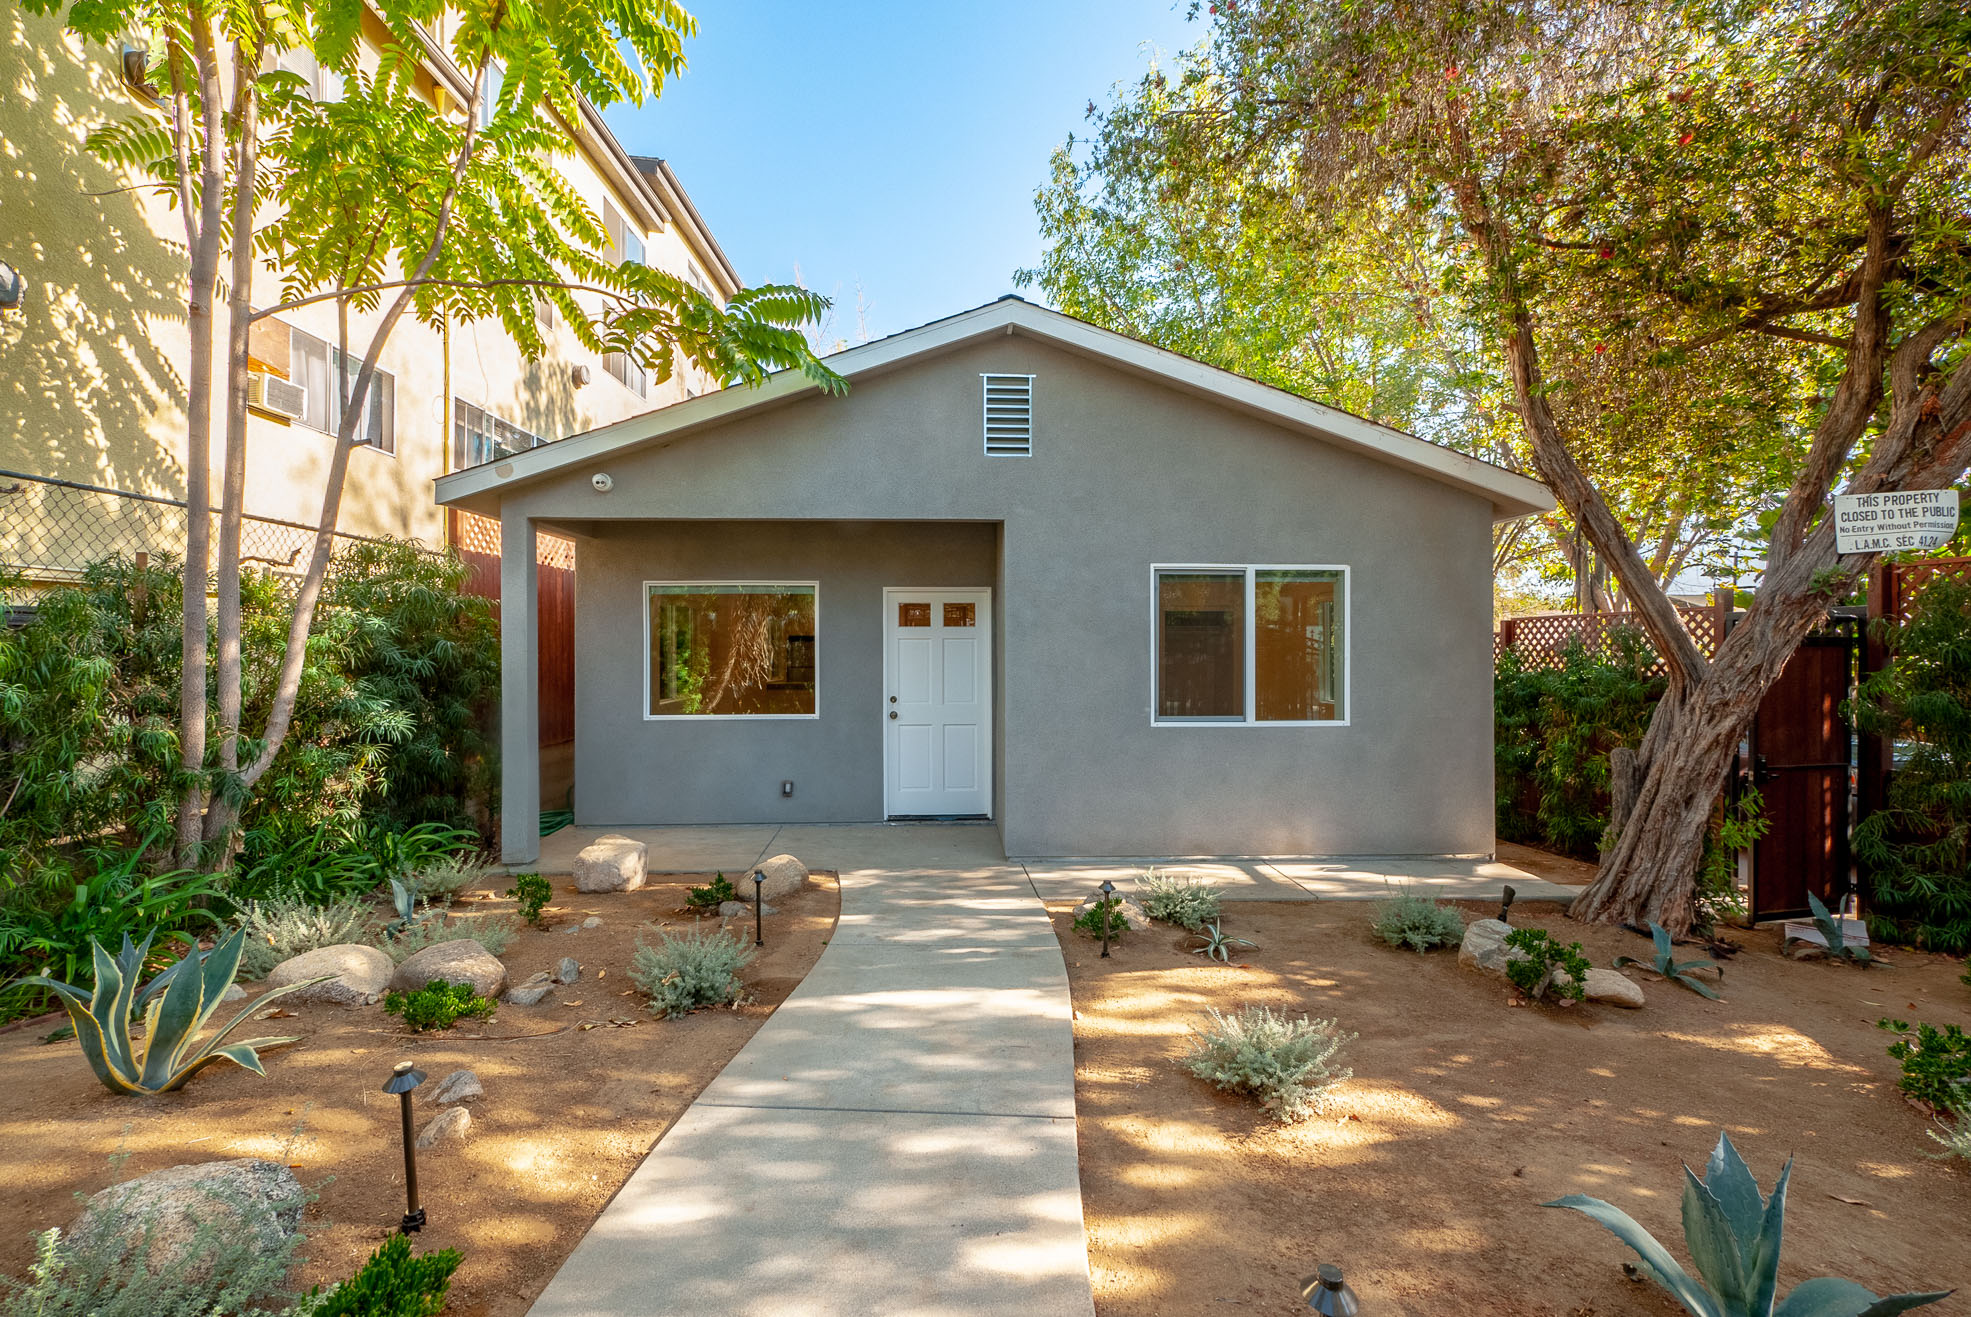 Private Yard, Fully Fenced, Gated Parking, Private Home! Fully Renovated 2 Bed/2 Bath w/ Brand new appliances, including Washer/Dryer!